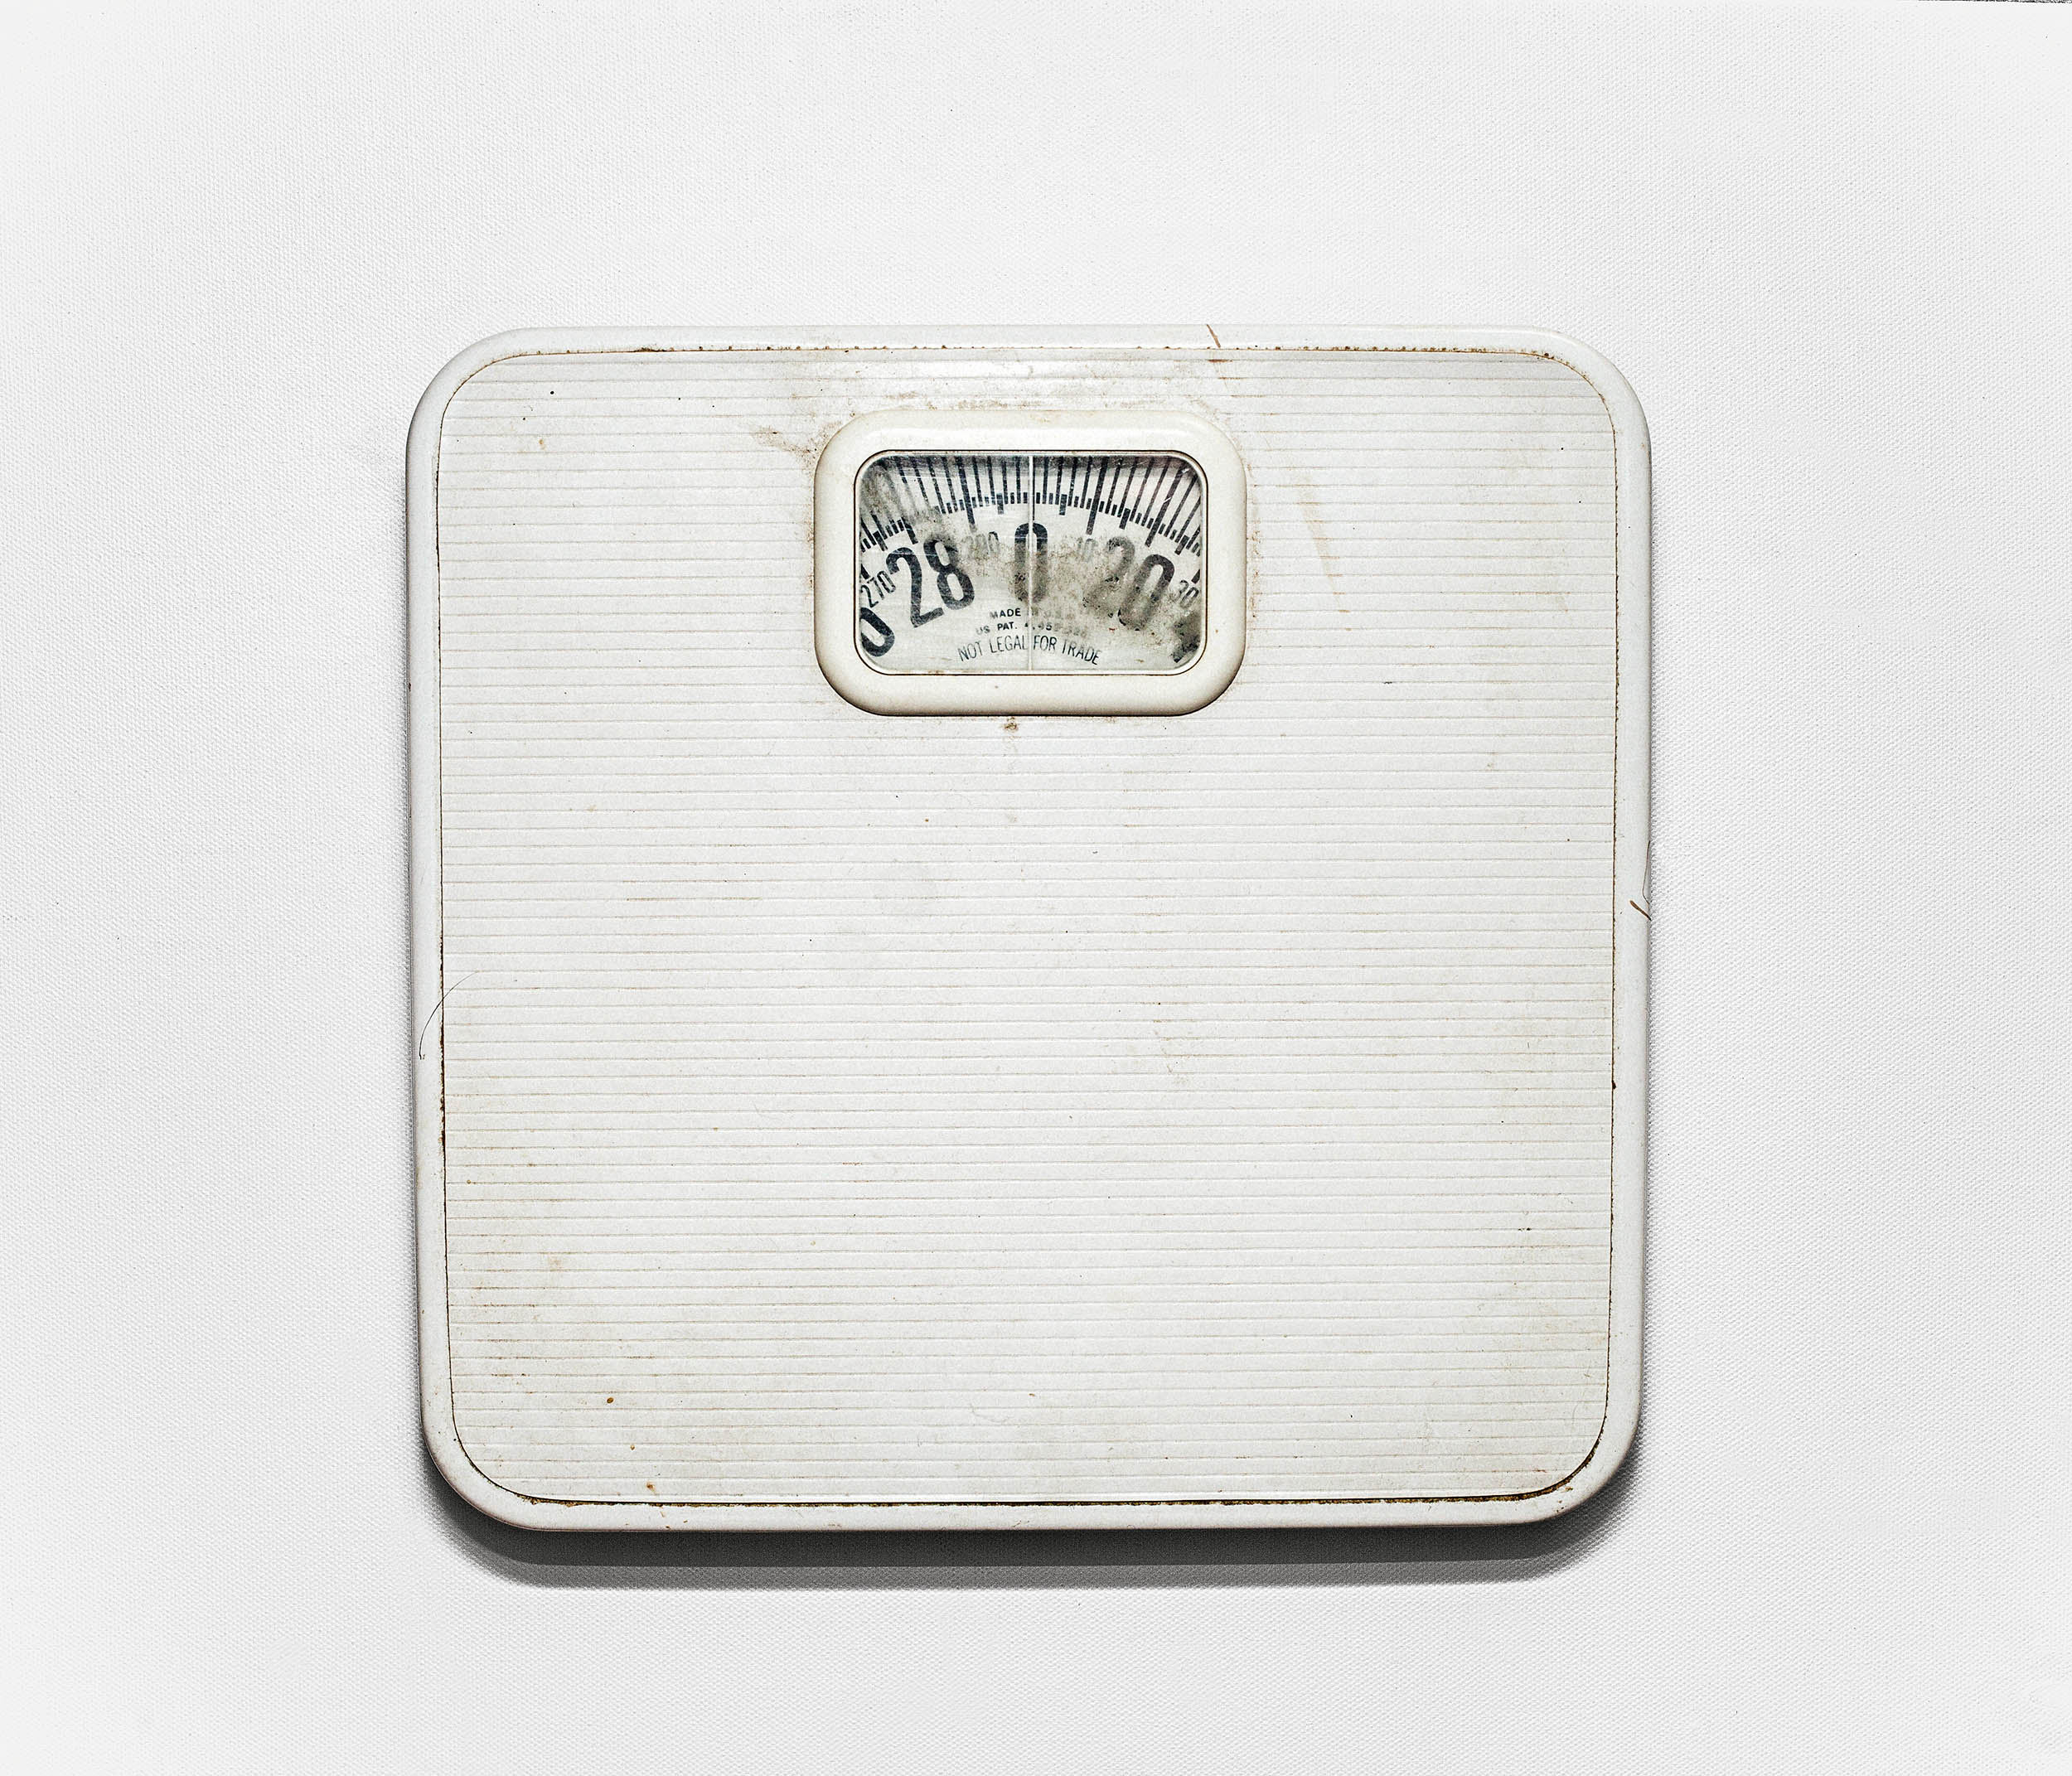 """""""She start losing weight before collage, we all thought was a positive thing, nobody actually knew what was really going on"""" – Tommy, Cammy's brother. In the picture a still-life photograph of Cammy's scale at her parent's house. Chattanooga, Tennessee, 2013.  Note: the background of this image has being altered with photoshop.  This is the story of the Robinson family – and the aftermath suffered in losing their 26 year old daughter to bulimia. Working closely with the family Laia Abril reconstructs Cammy's life telling her story through flashbacks – memories, testimonies, objects, letters, places and images. The Epilogue gives voice to the suffering of the family, the indirect victims of 'eating disorders', the unwilling eyewitnesses of a very painful degeneration. Laia Abril shows us the dilemmas and struggles confronted by many young girls; the problems families face in dealing with guilt and the grieving process; the frustration of close friends and the dark ghosts of this deadliest of illnesses; all blended together in the bittersweet act of remembering a loved one."""